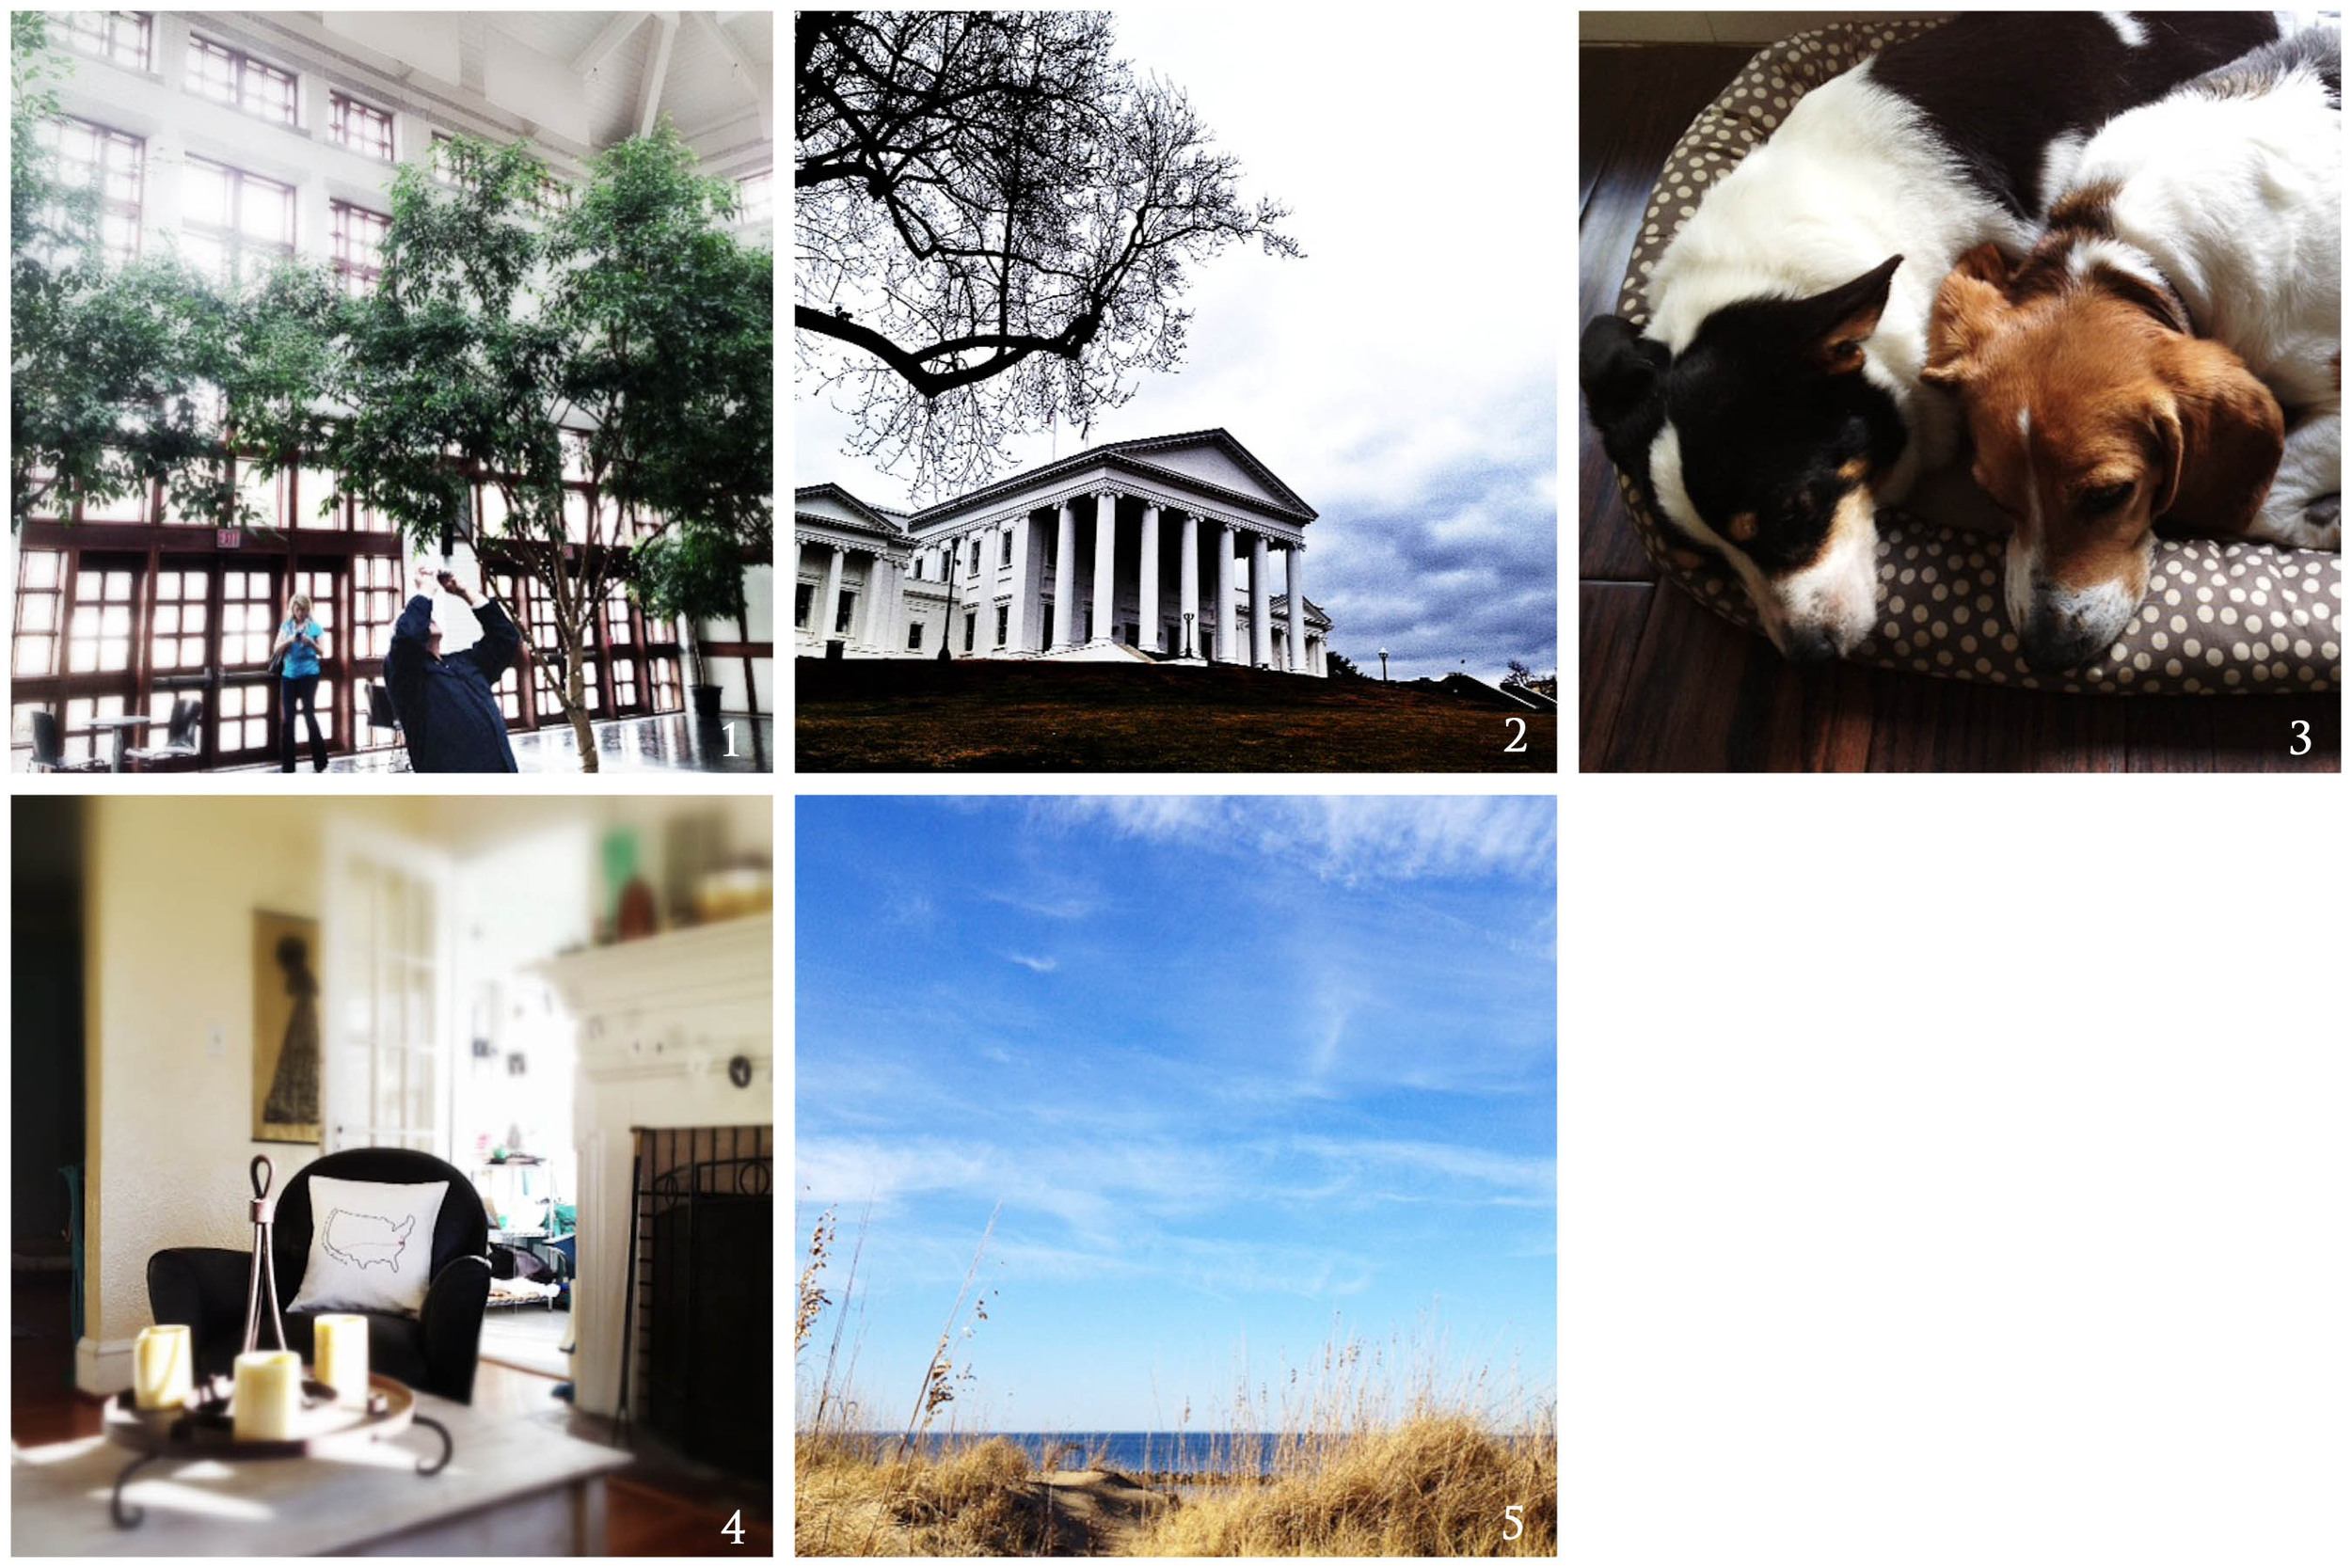 1. ditch your gear! | 2. storm clouds over richmond (metaphor?) | 3. sugarplums | 4. cozy corner thanks to plumed! | 5. lauren's happy place, sun on my face, sand in my shoes